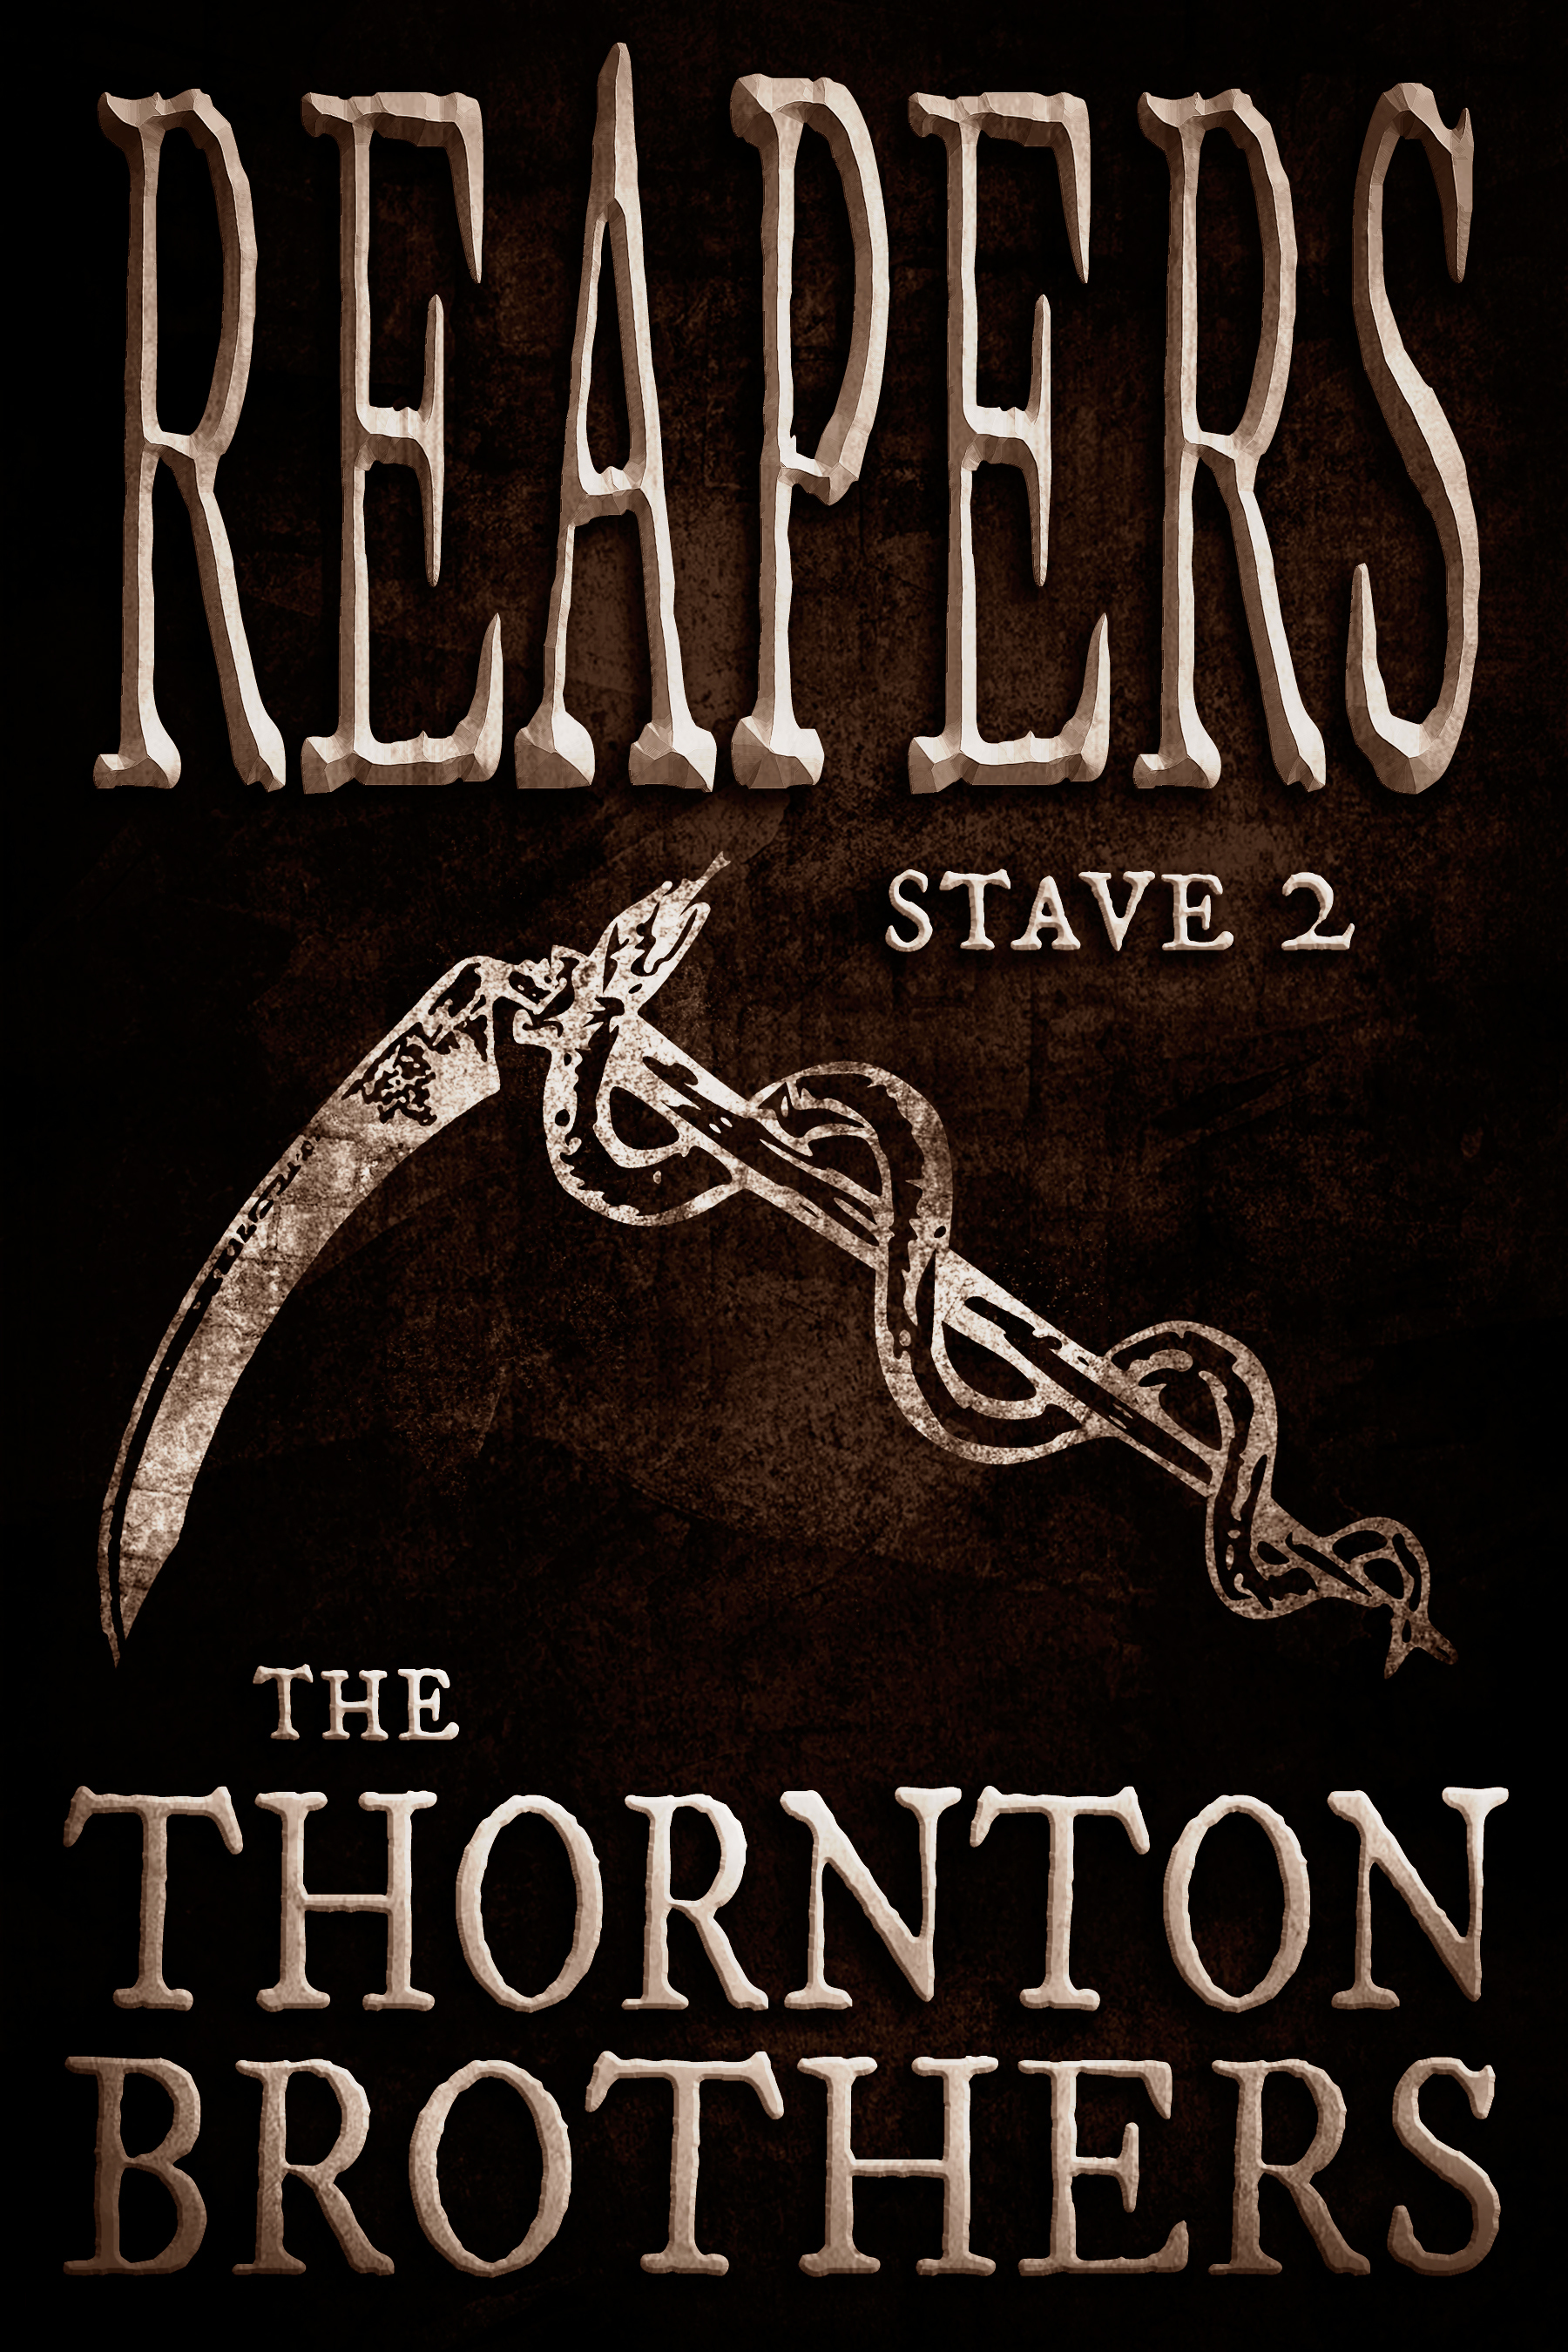 REAPERS: Stave 2 Thornton Brothers